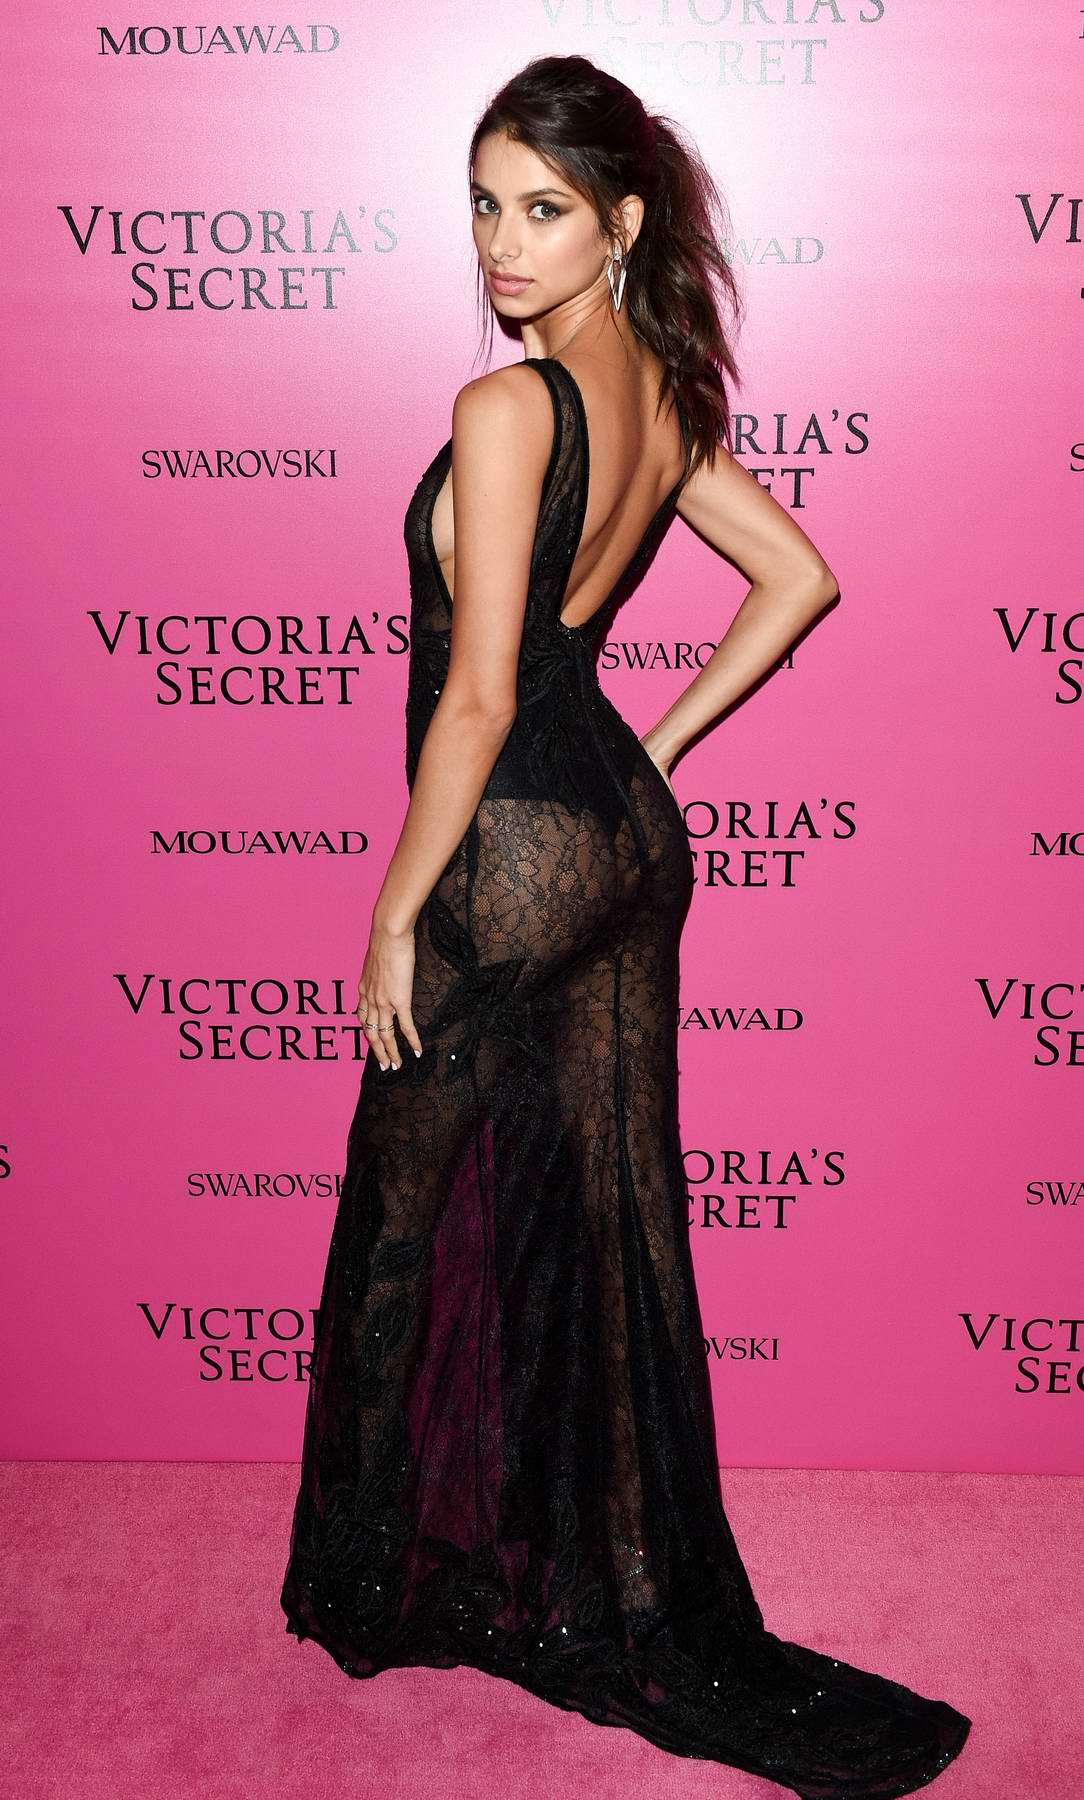 Bruna Lirio at the Victoria's Secret fashion show, pink carpet and after party at Expo Center in Shanghai, China